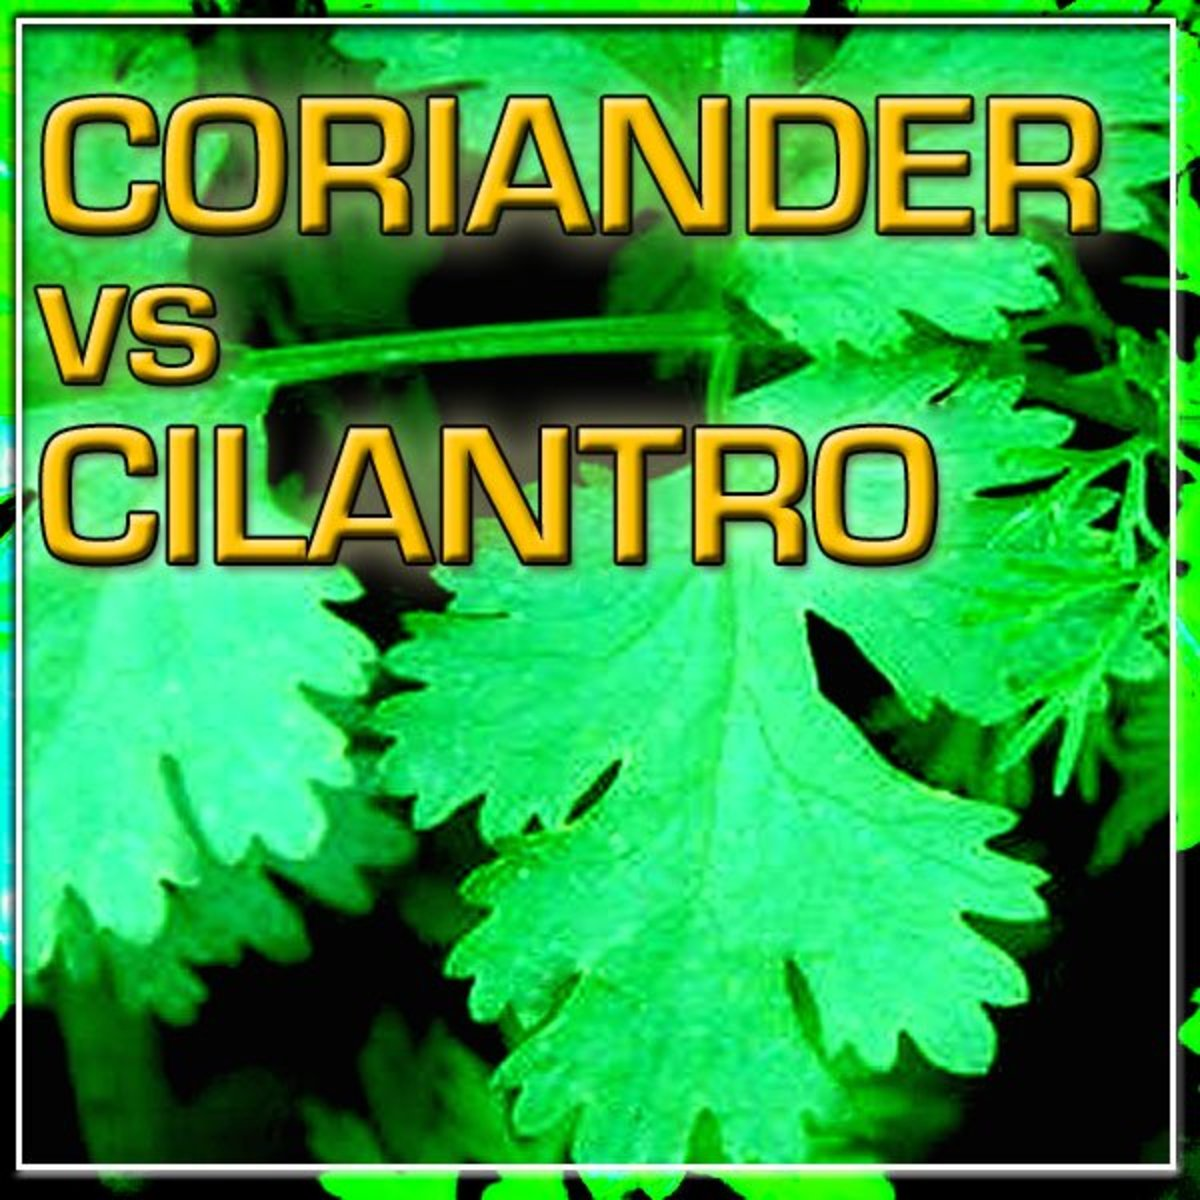 Are coriander and cilantro the same thing?